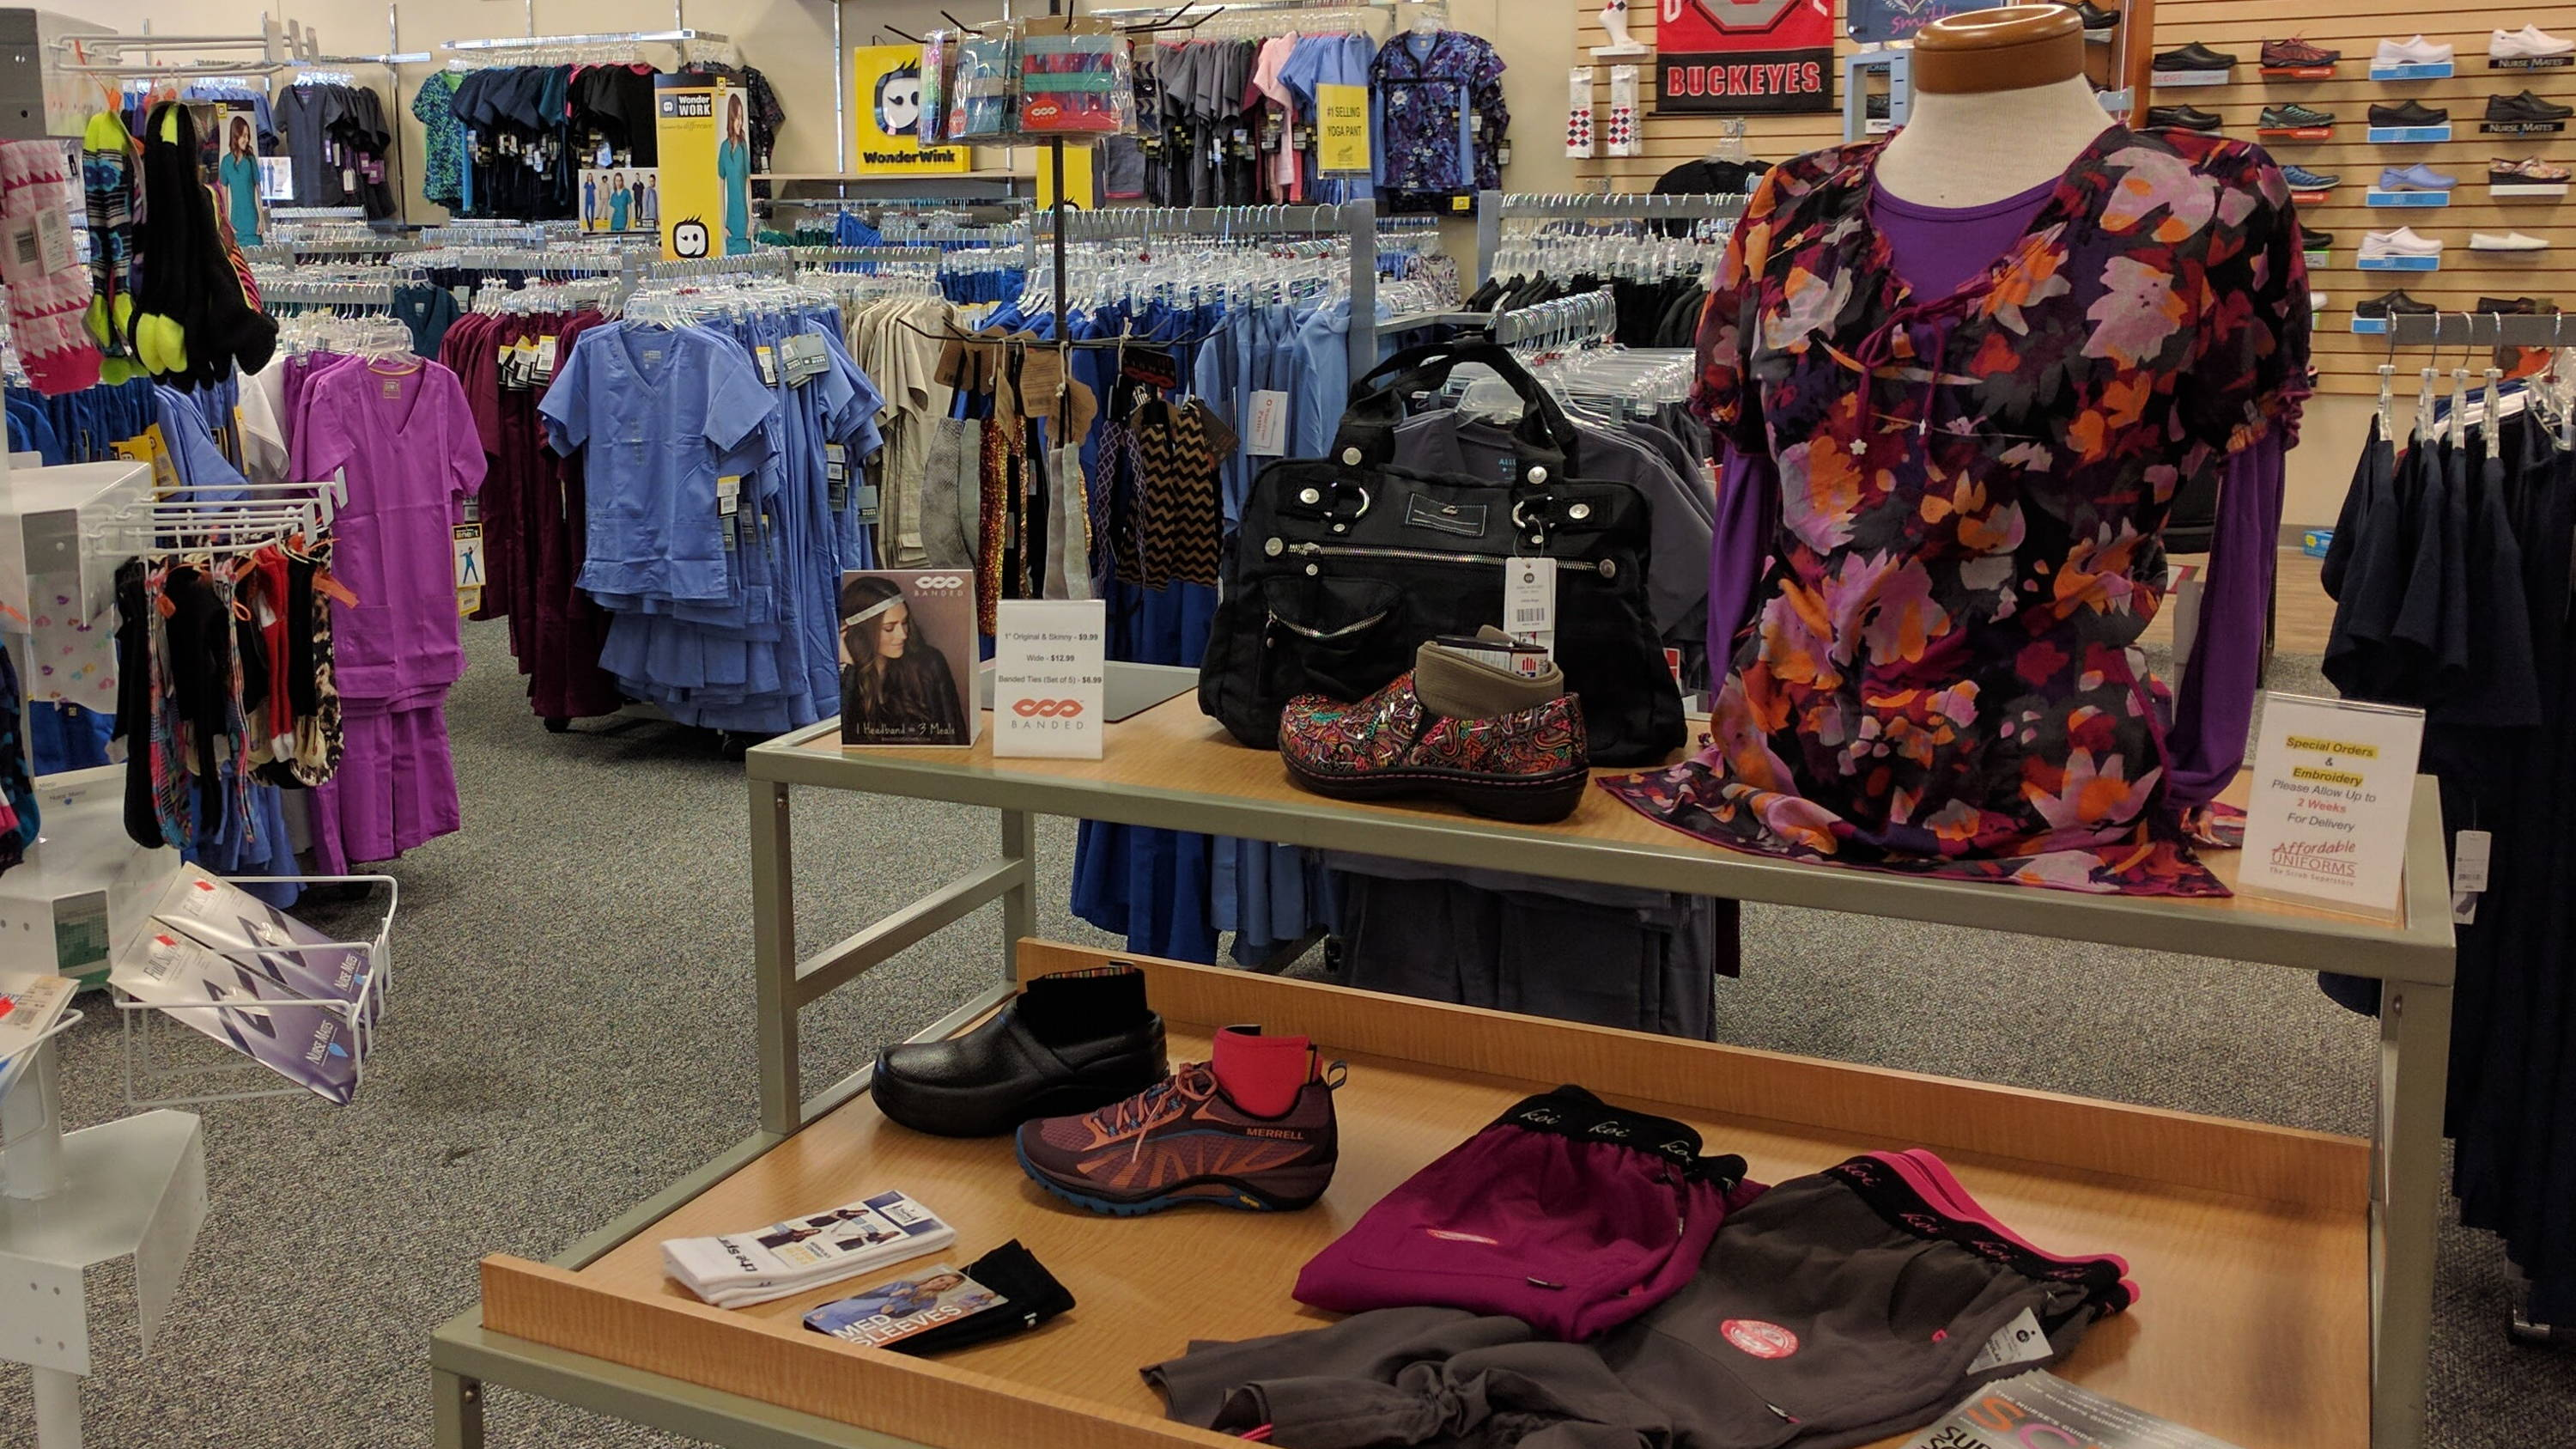 Great scrub displays and promotions at Affordable Uniforms